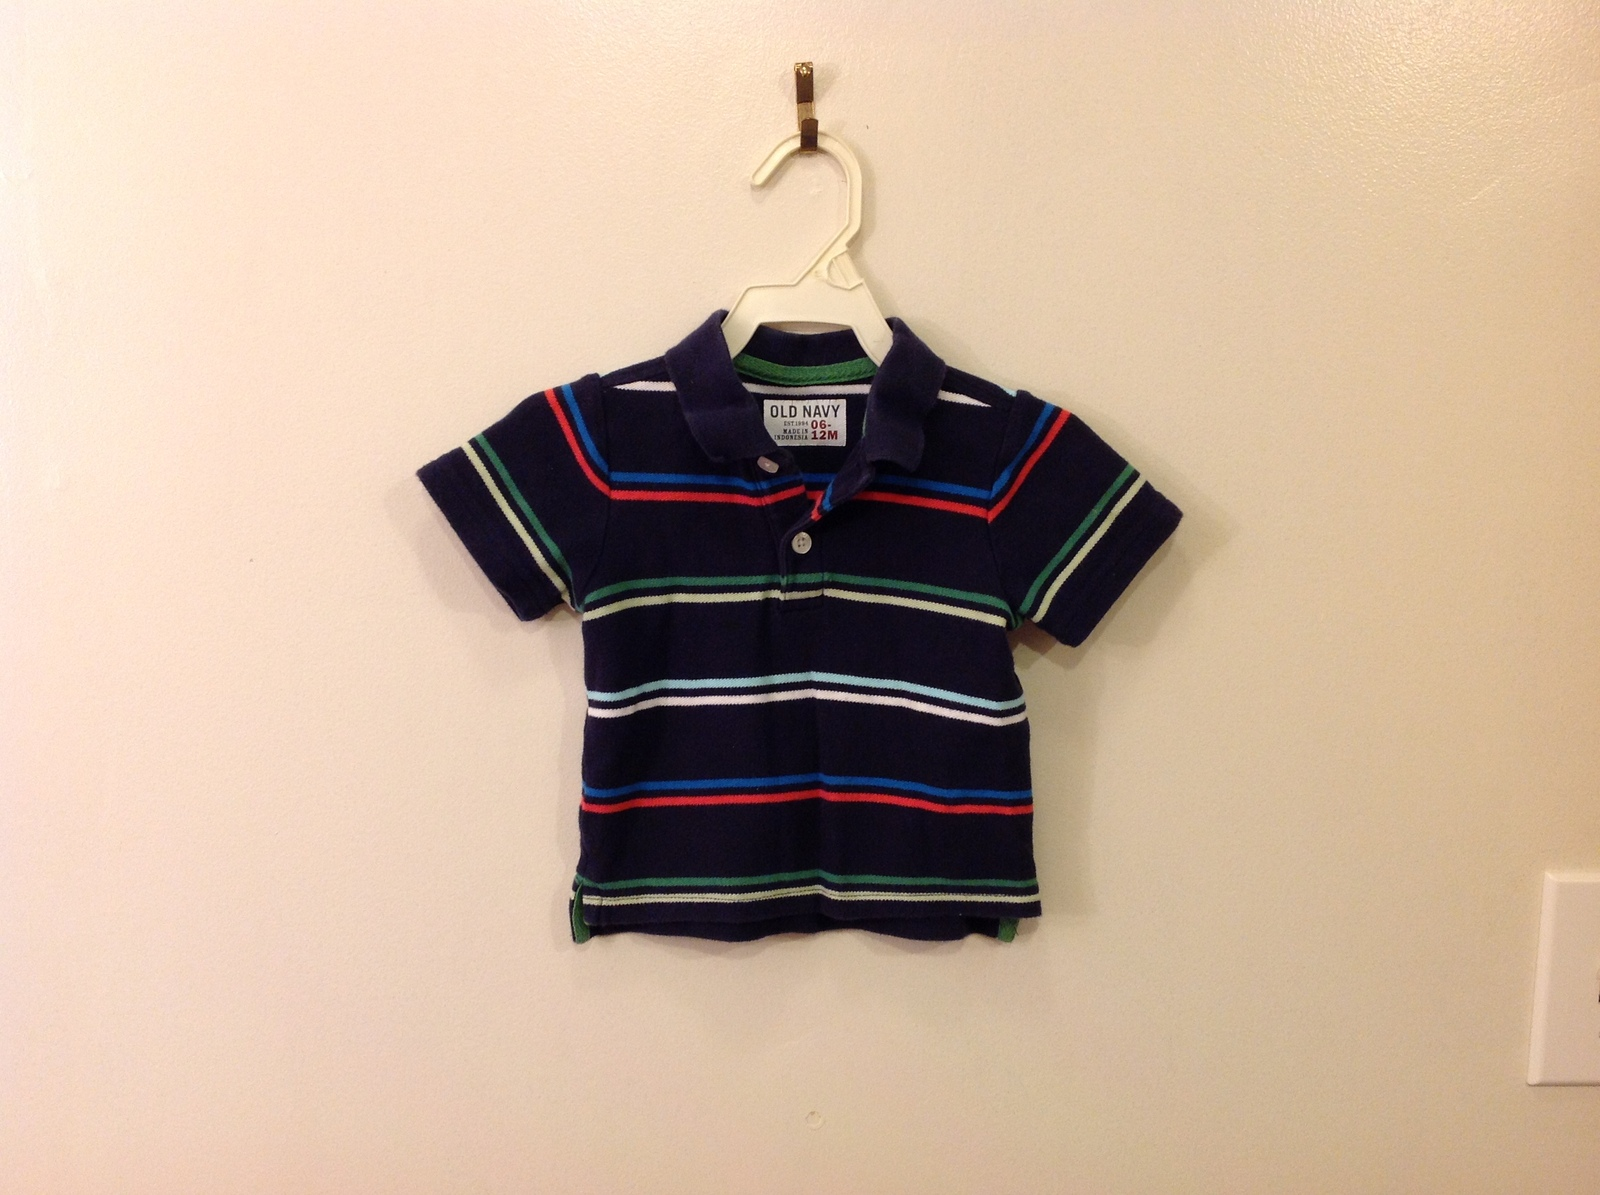 Old Navy Baby Boy Navy Blue Striped Polo style T-shirt 100% Cotton size 6-12 mo